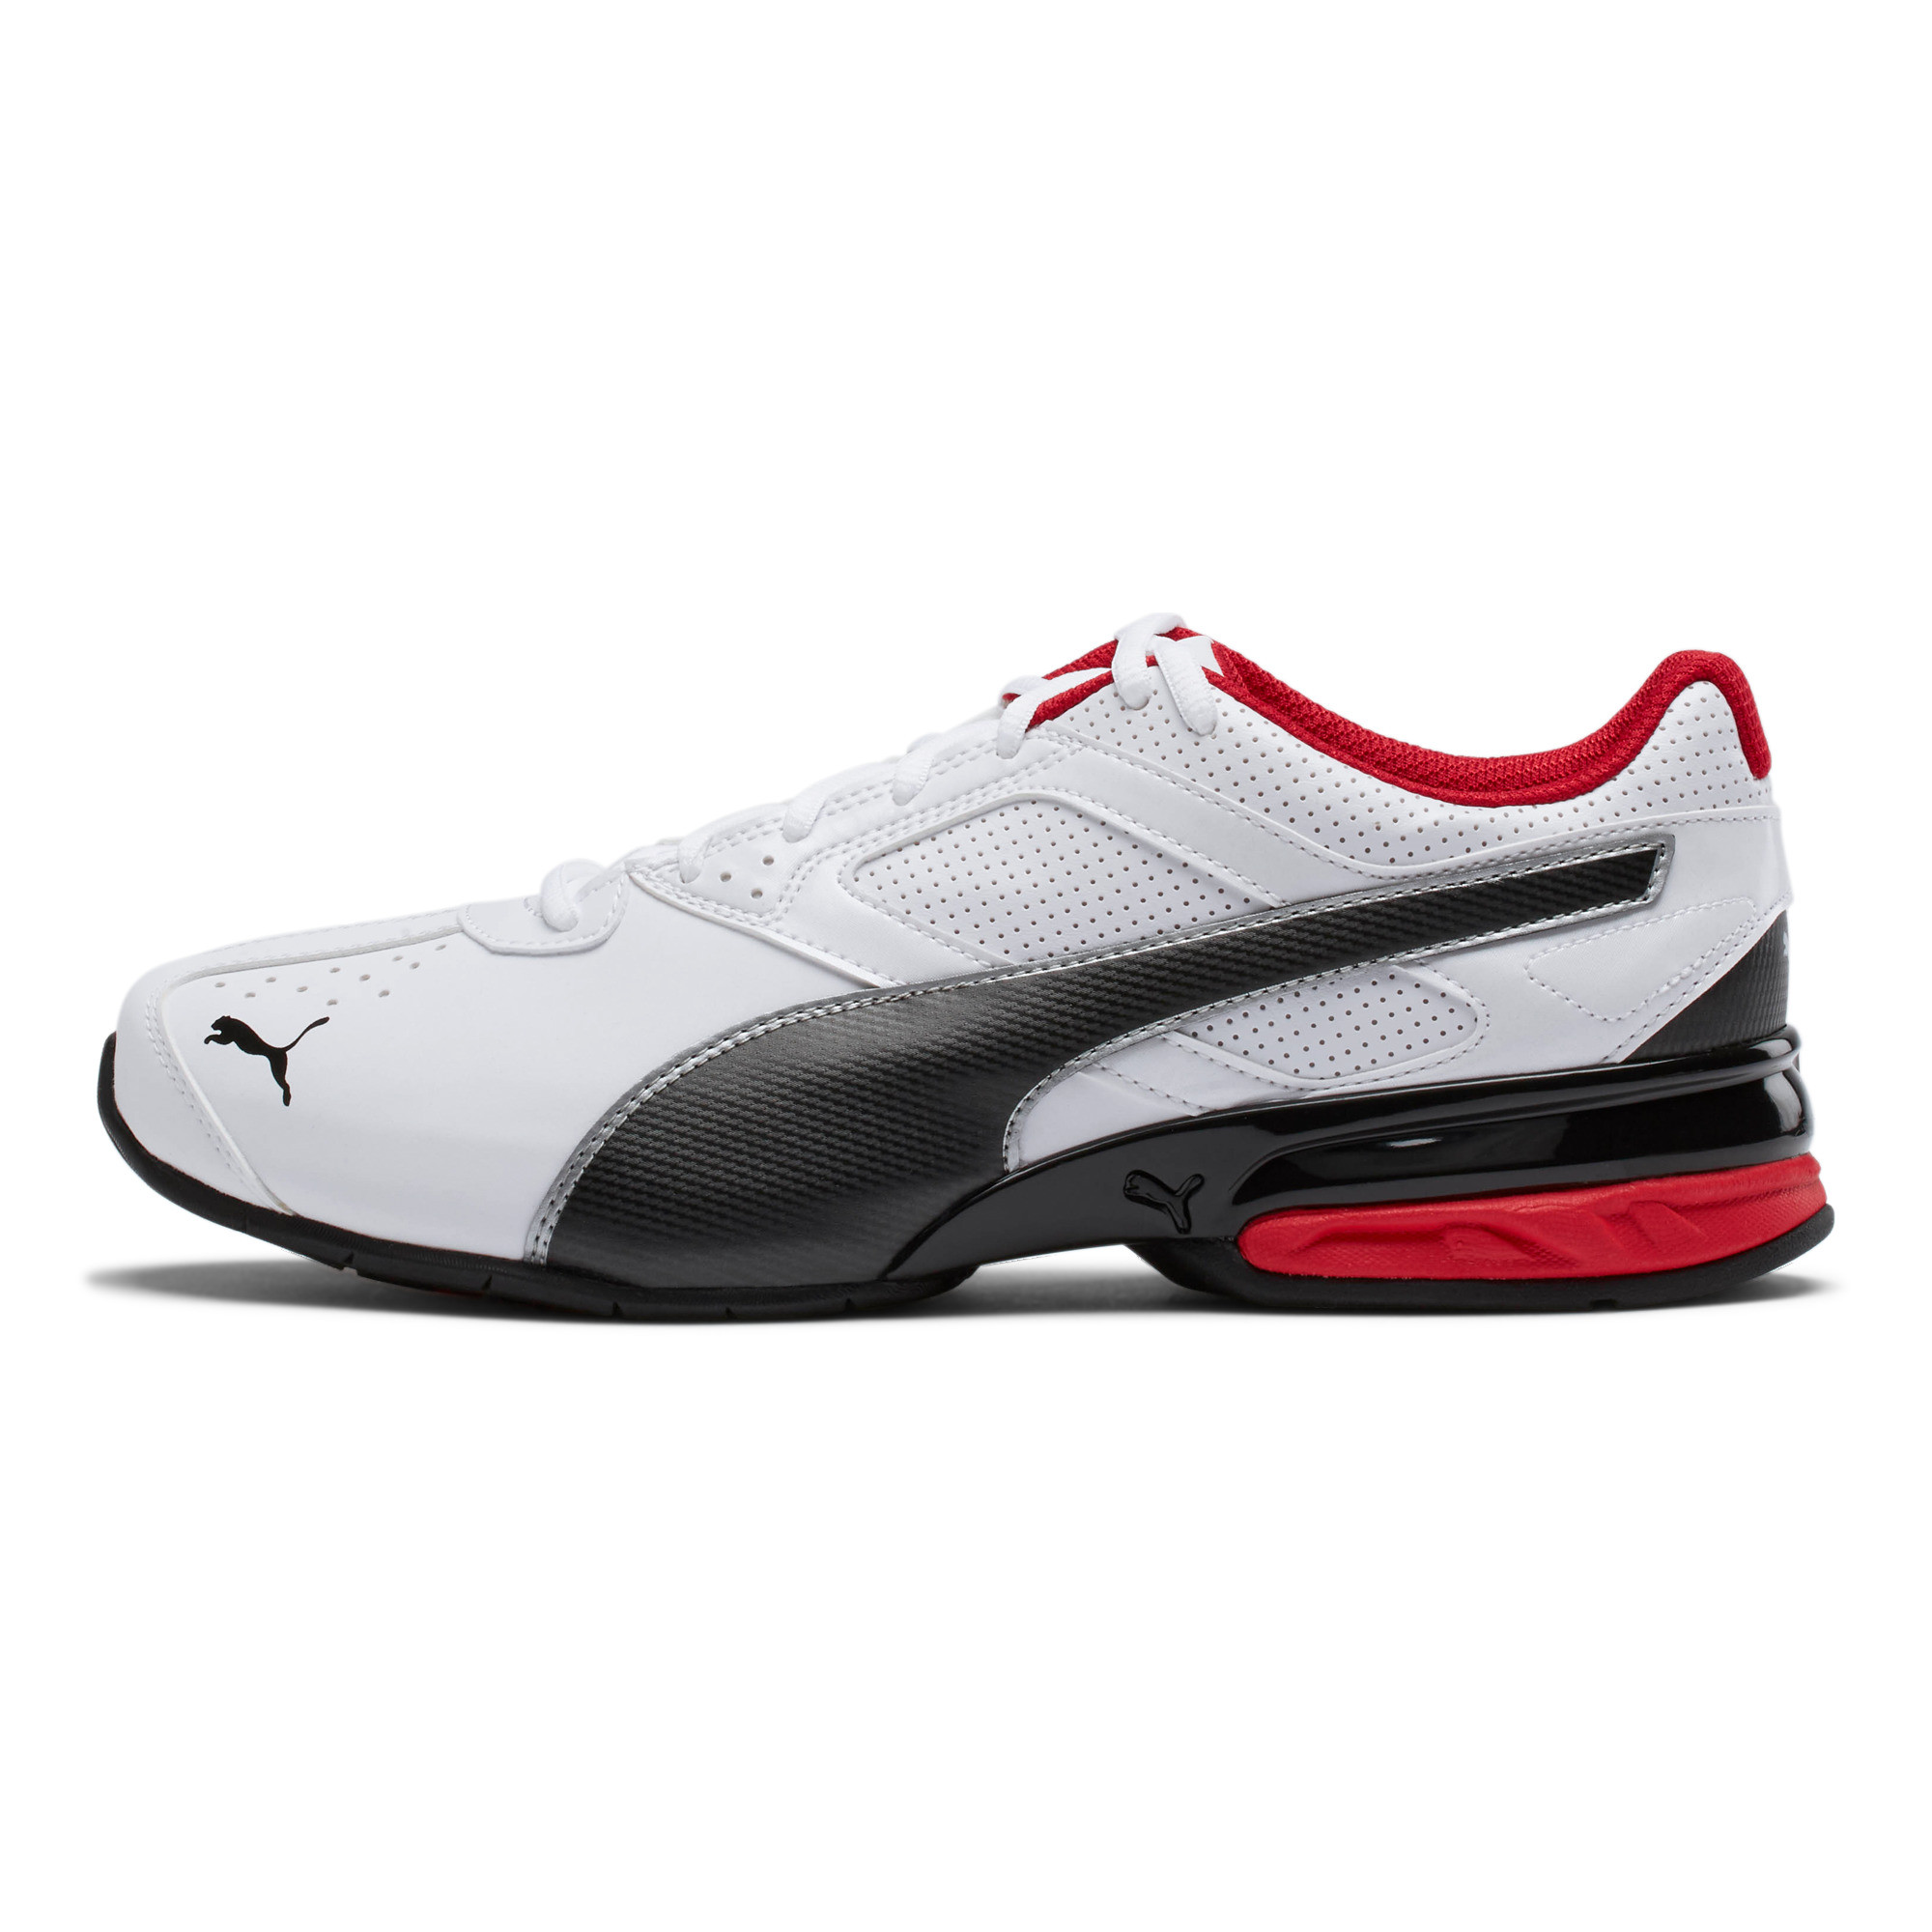 PUMA-Tazon-6-FM-Men-039-s-Sneakers-Men-Shoe-Running thumbnail 18